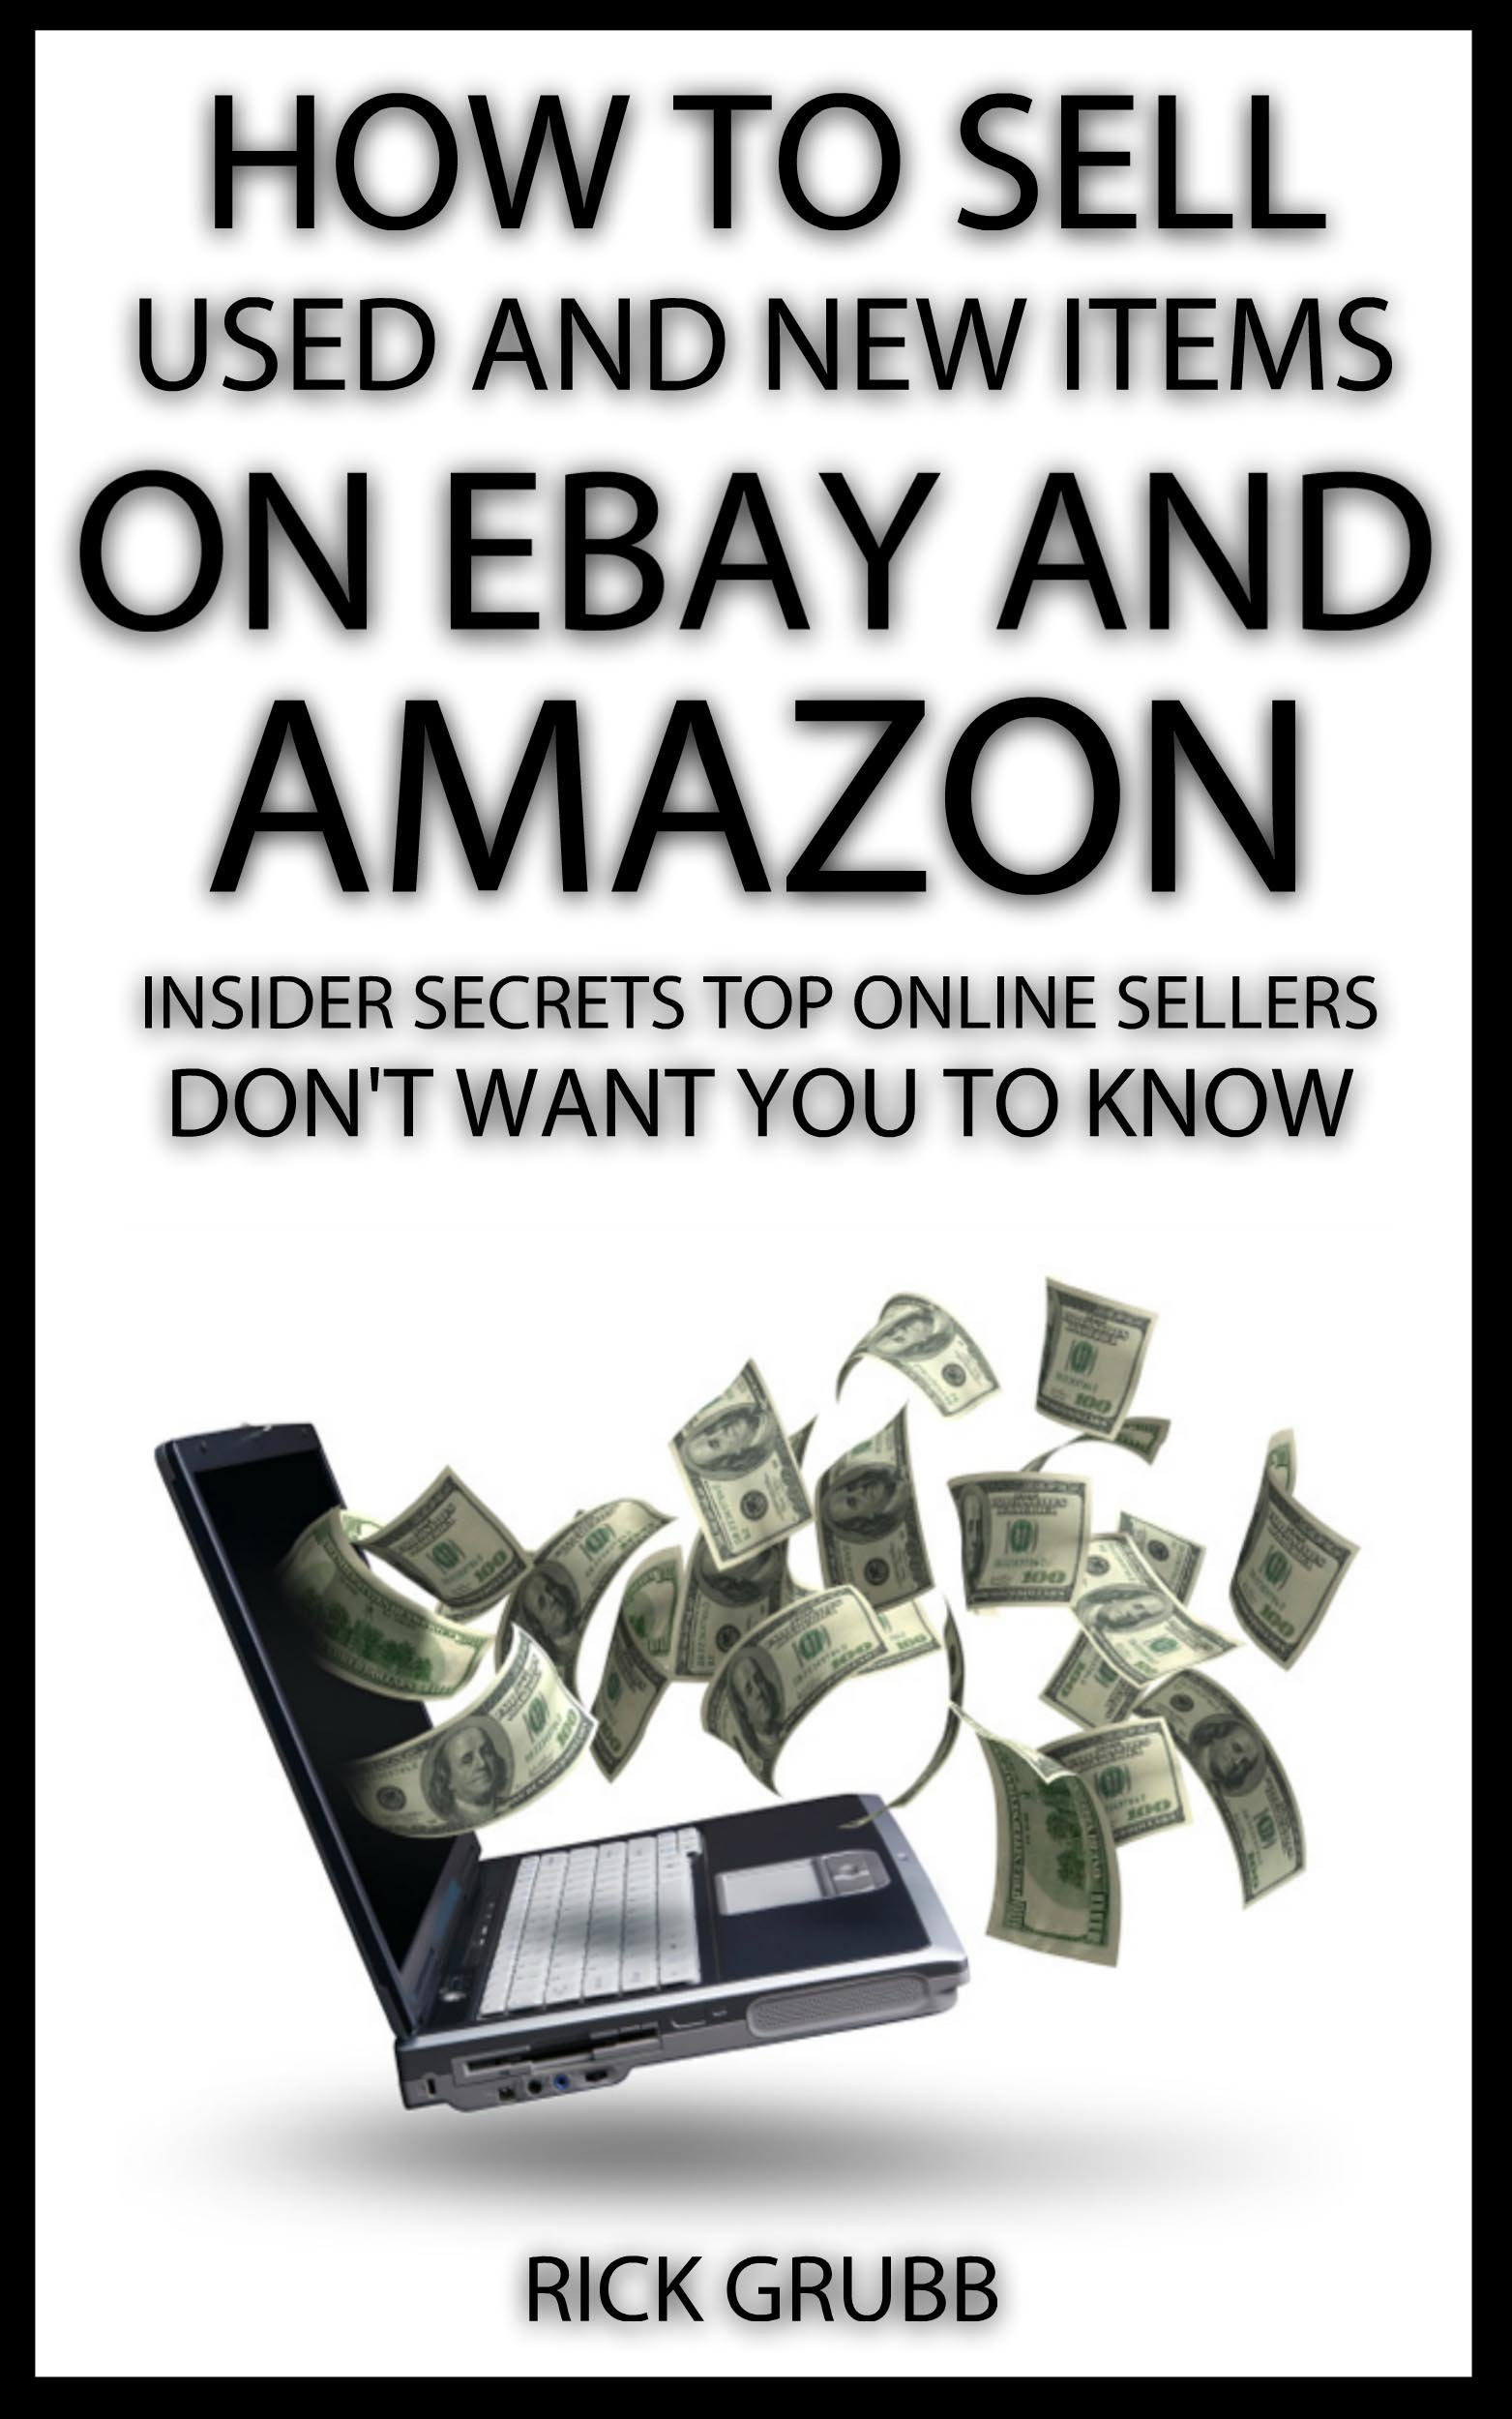 Amazon Com How To Sell Used And New Items On Ebay And Amazon Insider Secrets Top Online Sellers Don T Want You To Know Ebook Grubb Rick Kindle Store